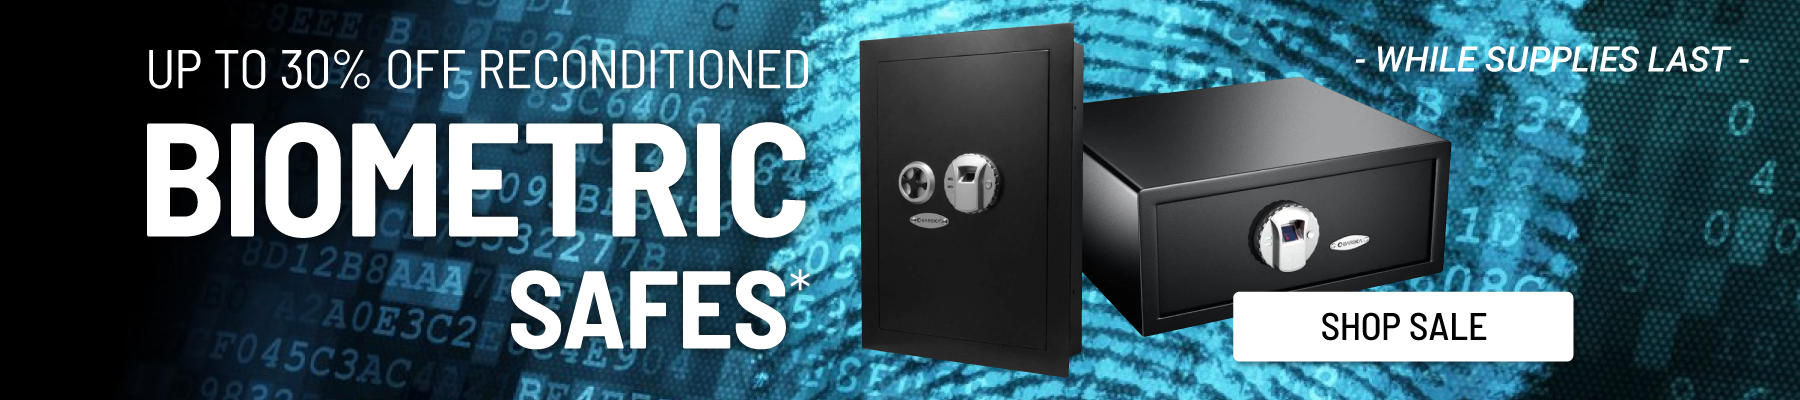 Up to 30% off Reconditioned Biometric Safes